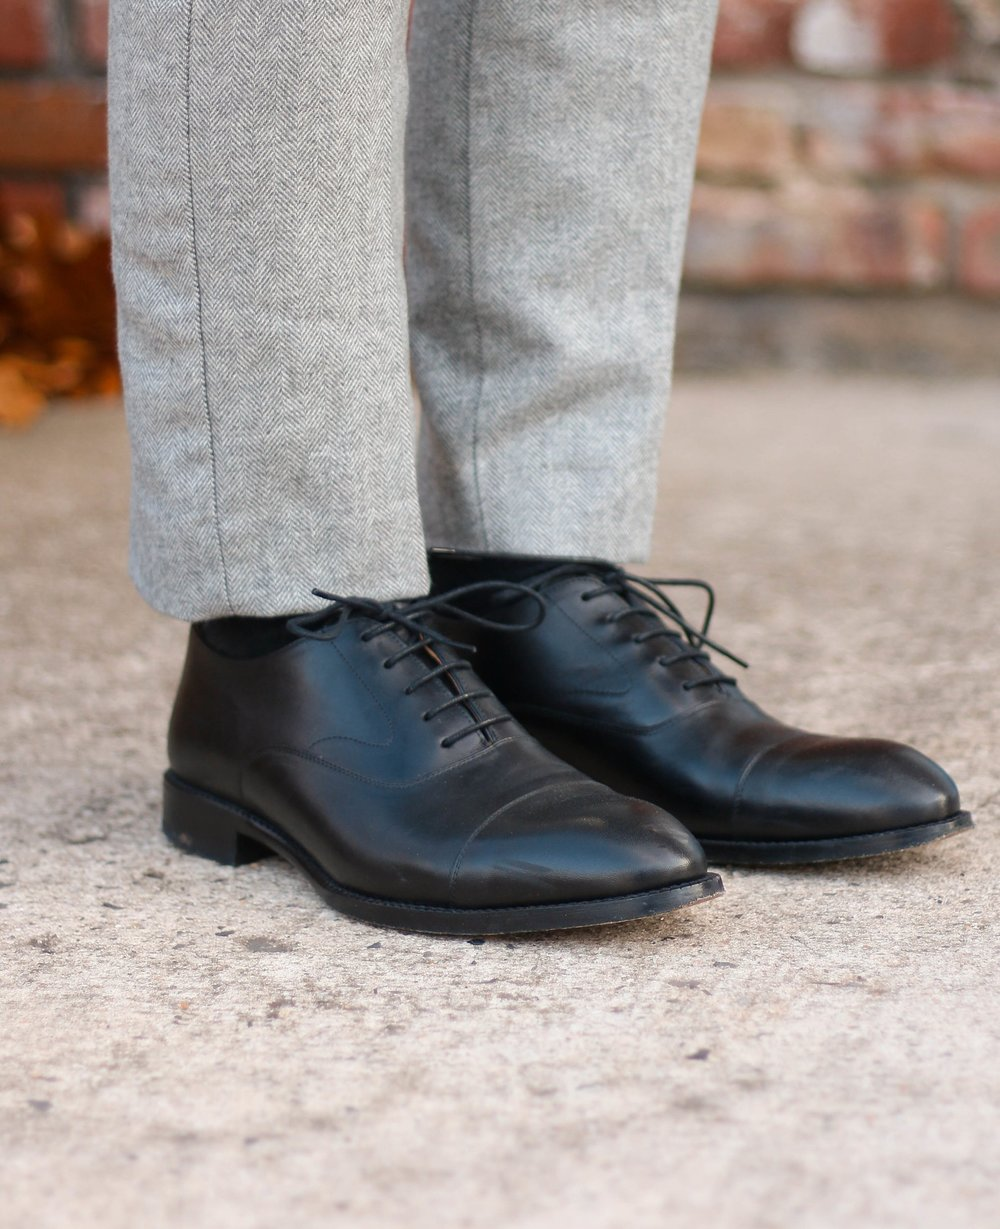 A look at the Beckett Simonon Dean oxford in black on feet. They look great with these gray flannel dress trousers.